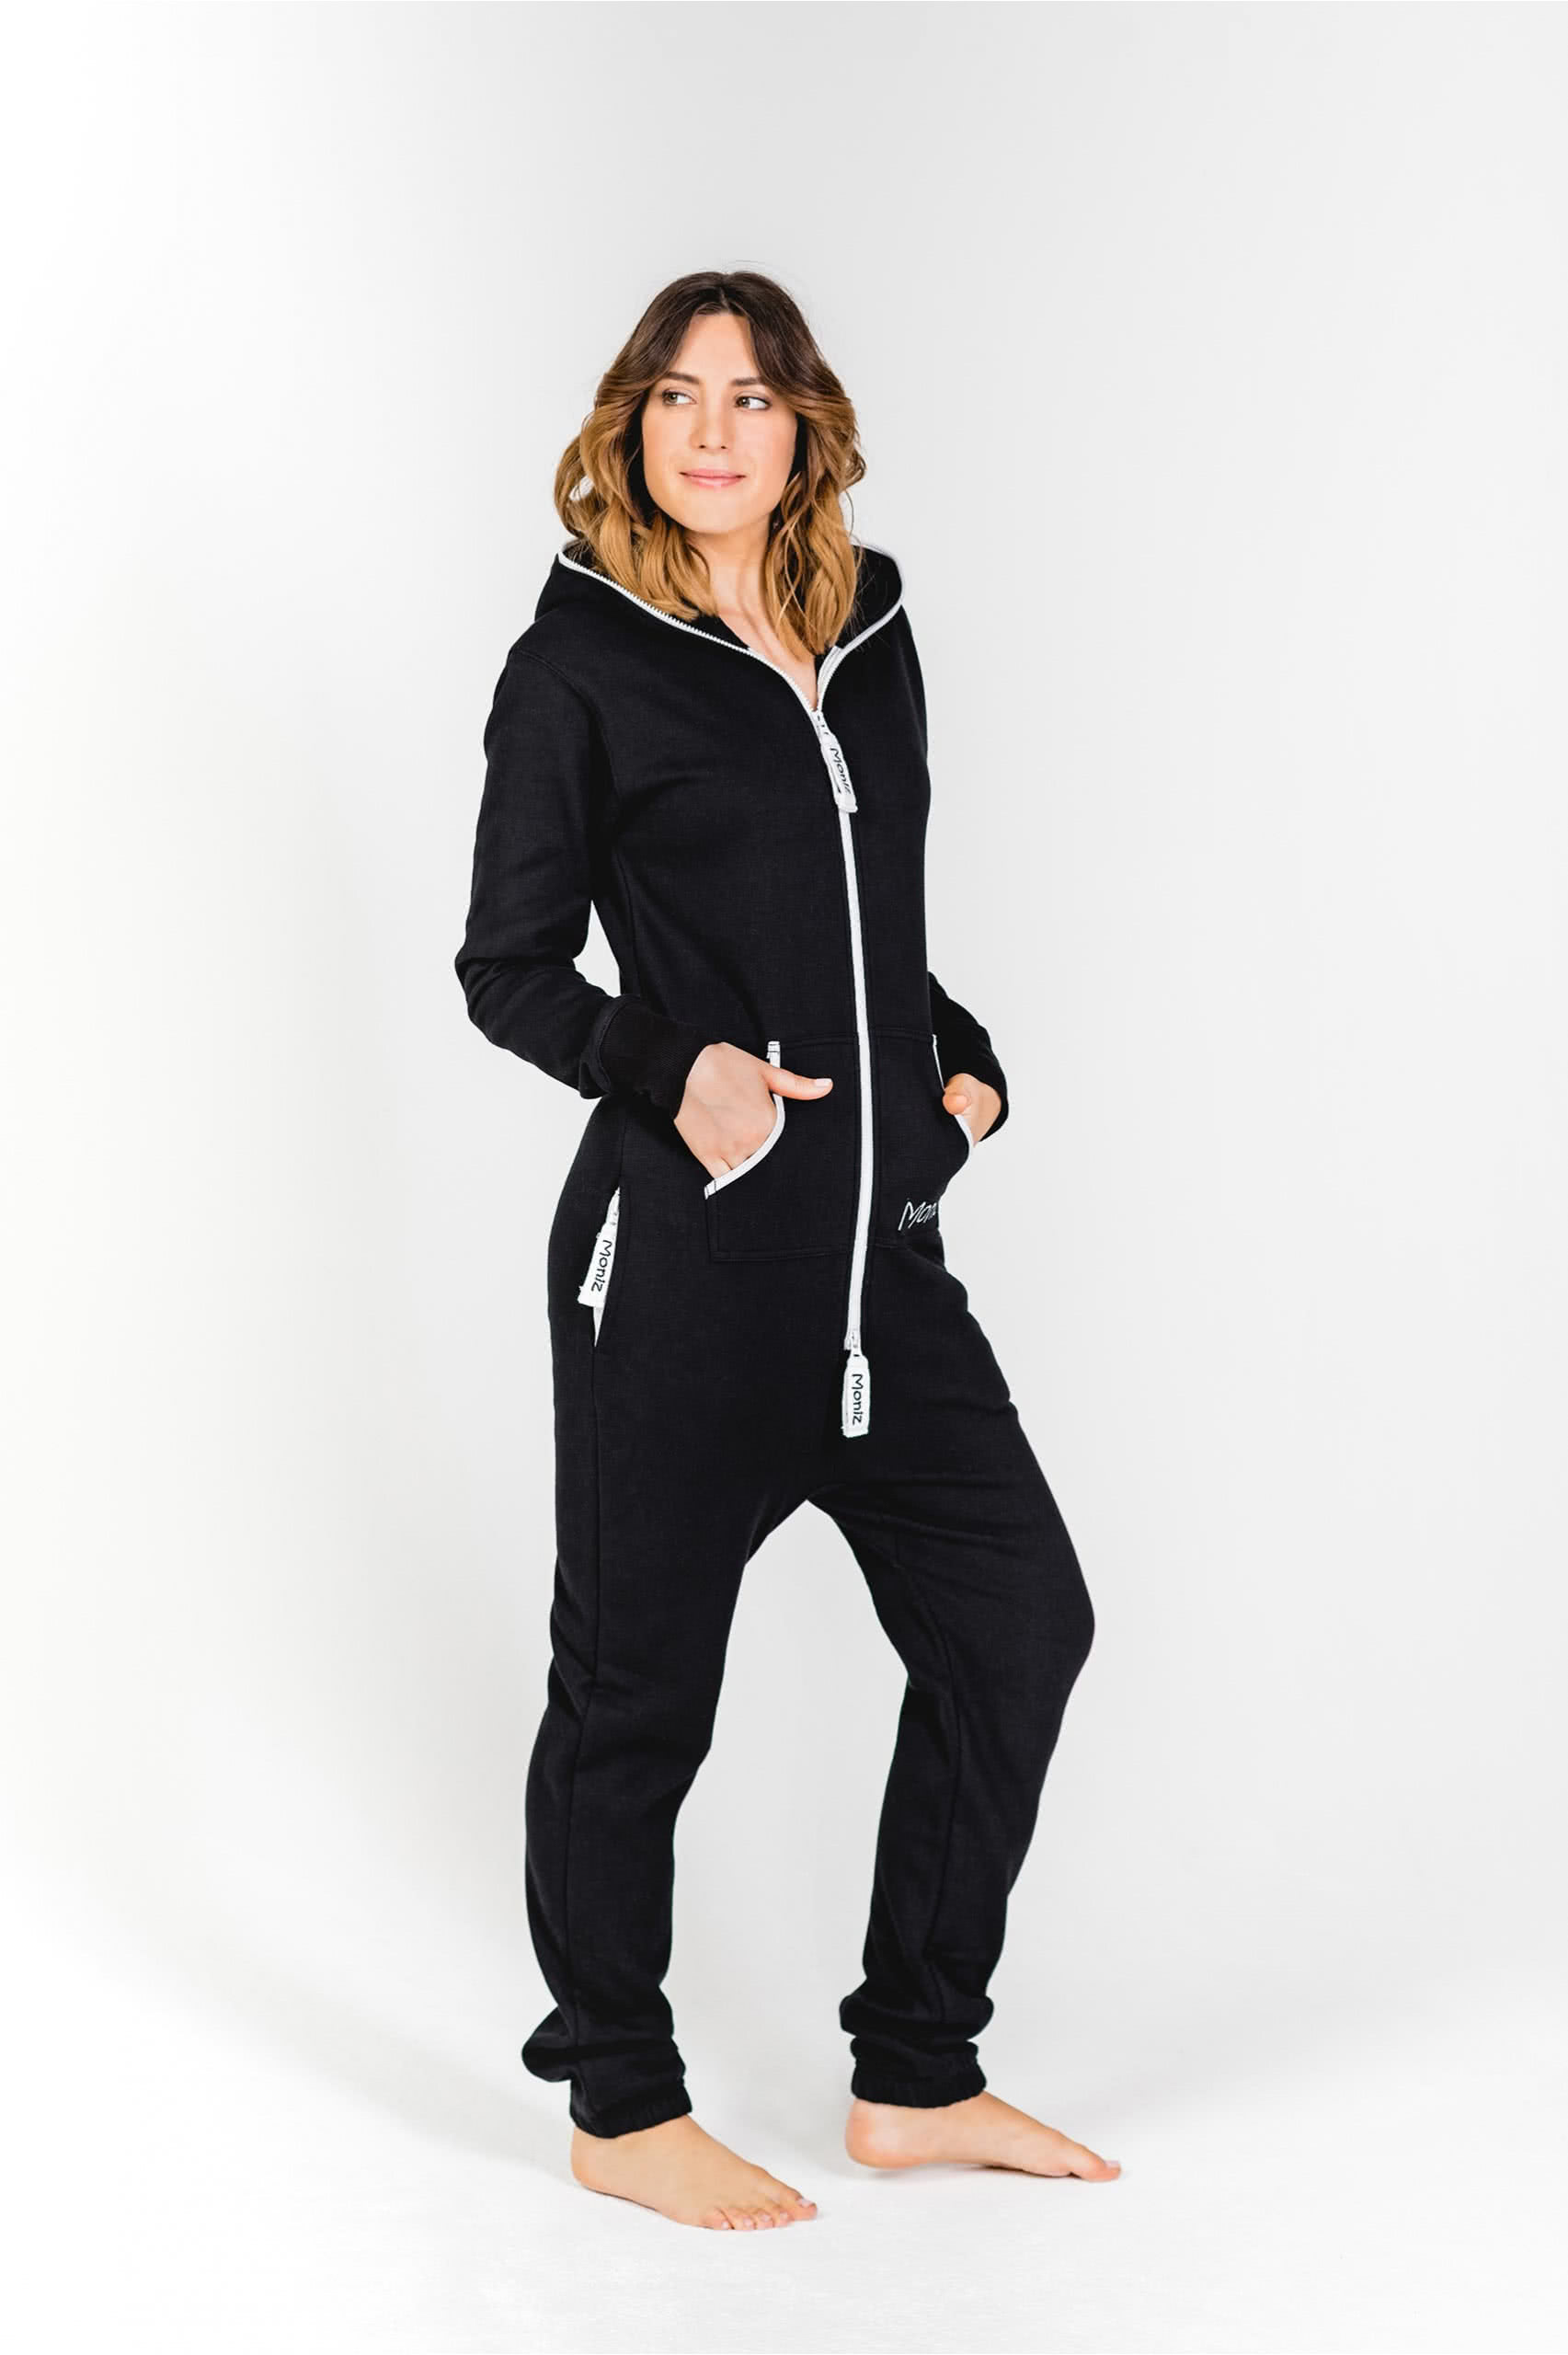 Moniz Damen Jumpsuit Schwarz - Weekend Black